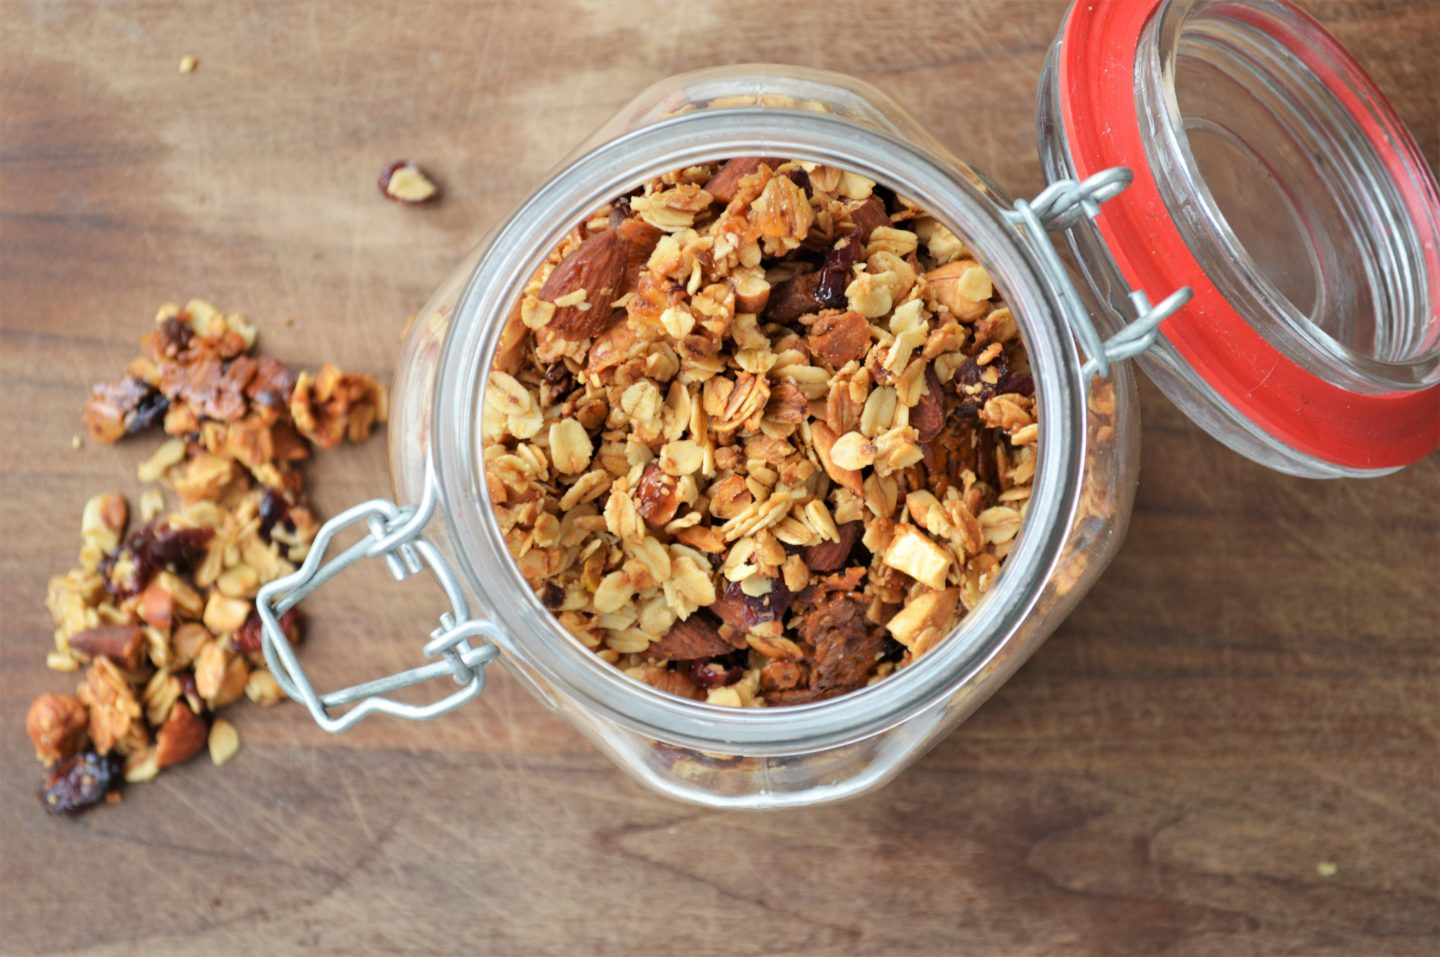 A jar of homemade cranberry nut granola.